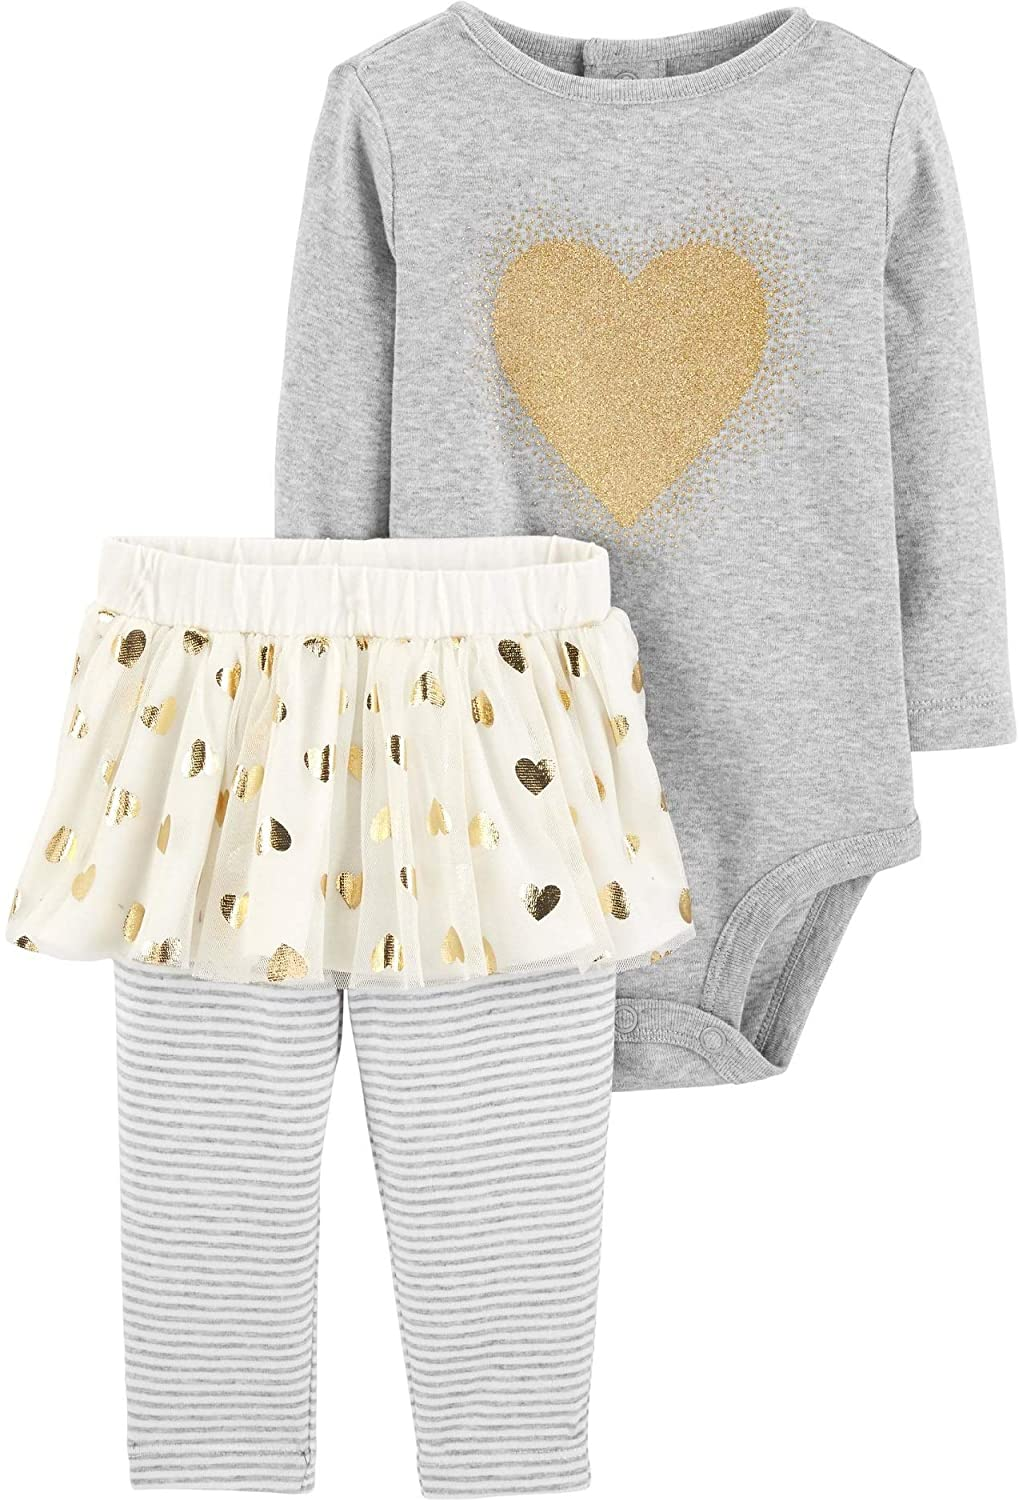 Carter's Baby Girls' 2-Piece Bodysuit and Tutu Pant Set (Heather/Gold Hearts, 9 Months)